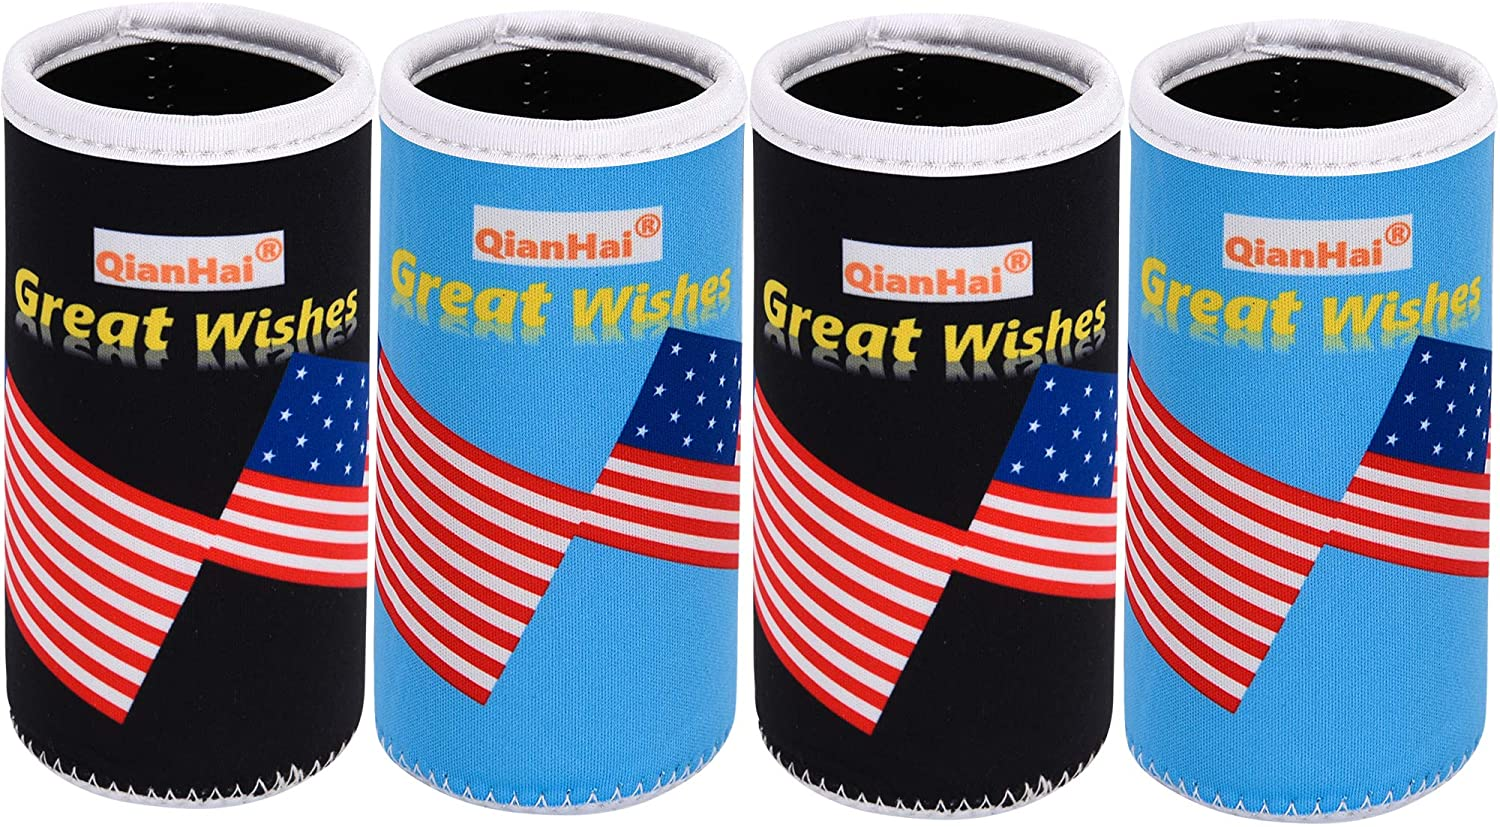 QianHai Slim Can Cooler Sleeves for White Claw Soda Insulated Sleeves for Beer Cans Coolers Michelob Ultra Can Holders for 12oz Skinny Fluid Energy Drink & Beer Cans (Black&SkyBlue 4 Pack)